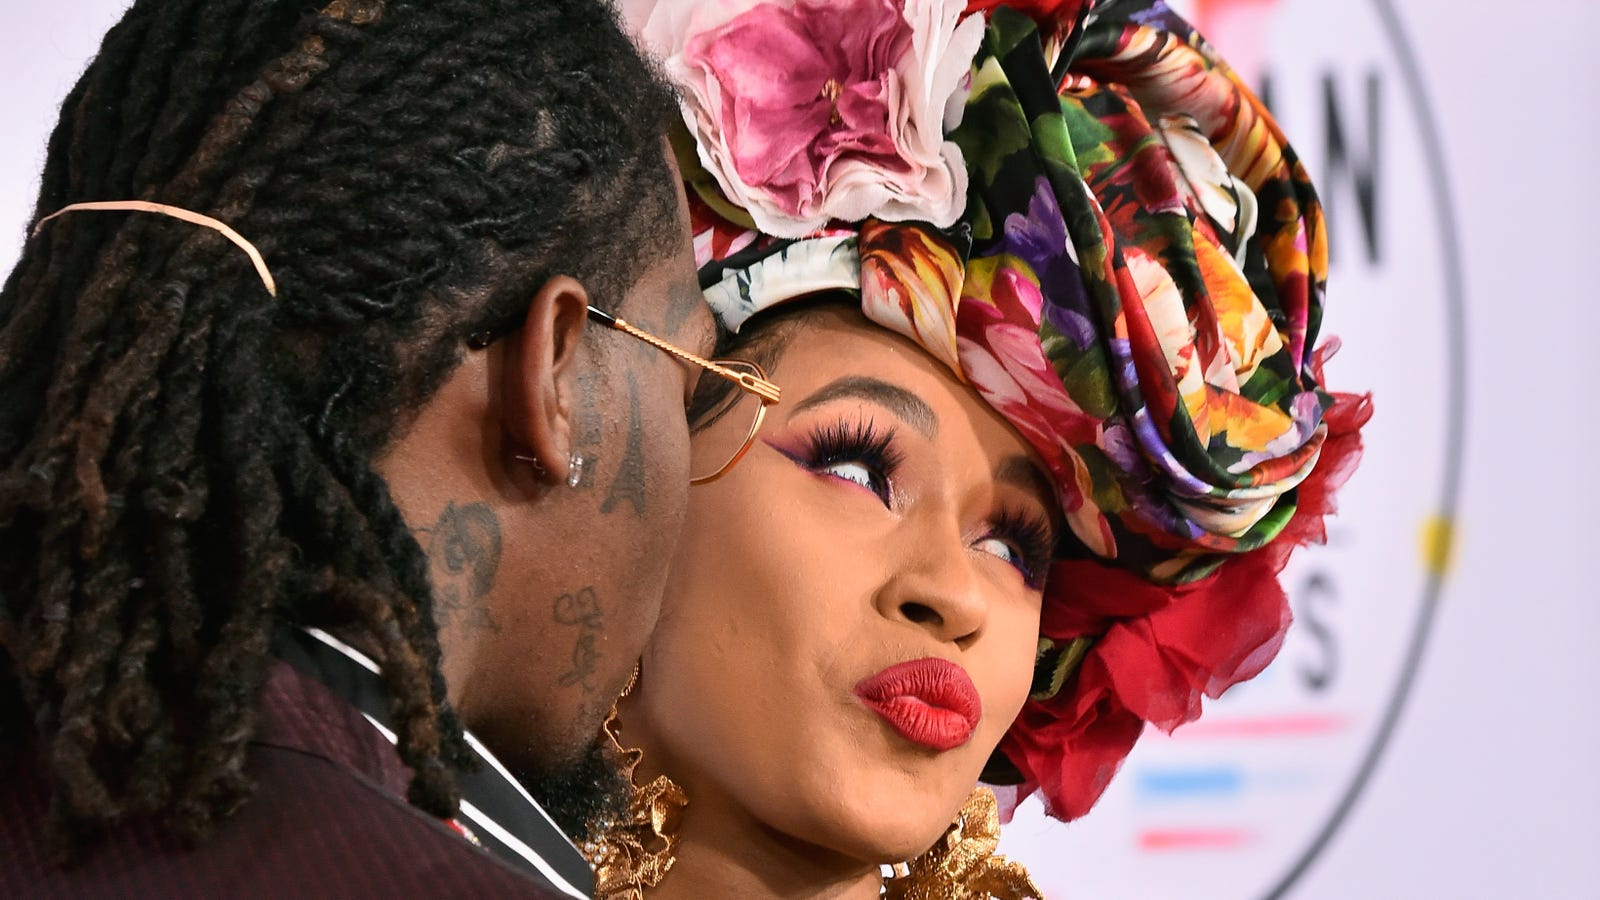 'Y'all Won': Cardi B Says She and Offset Aren't Together Anymore. He Seems Salty.